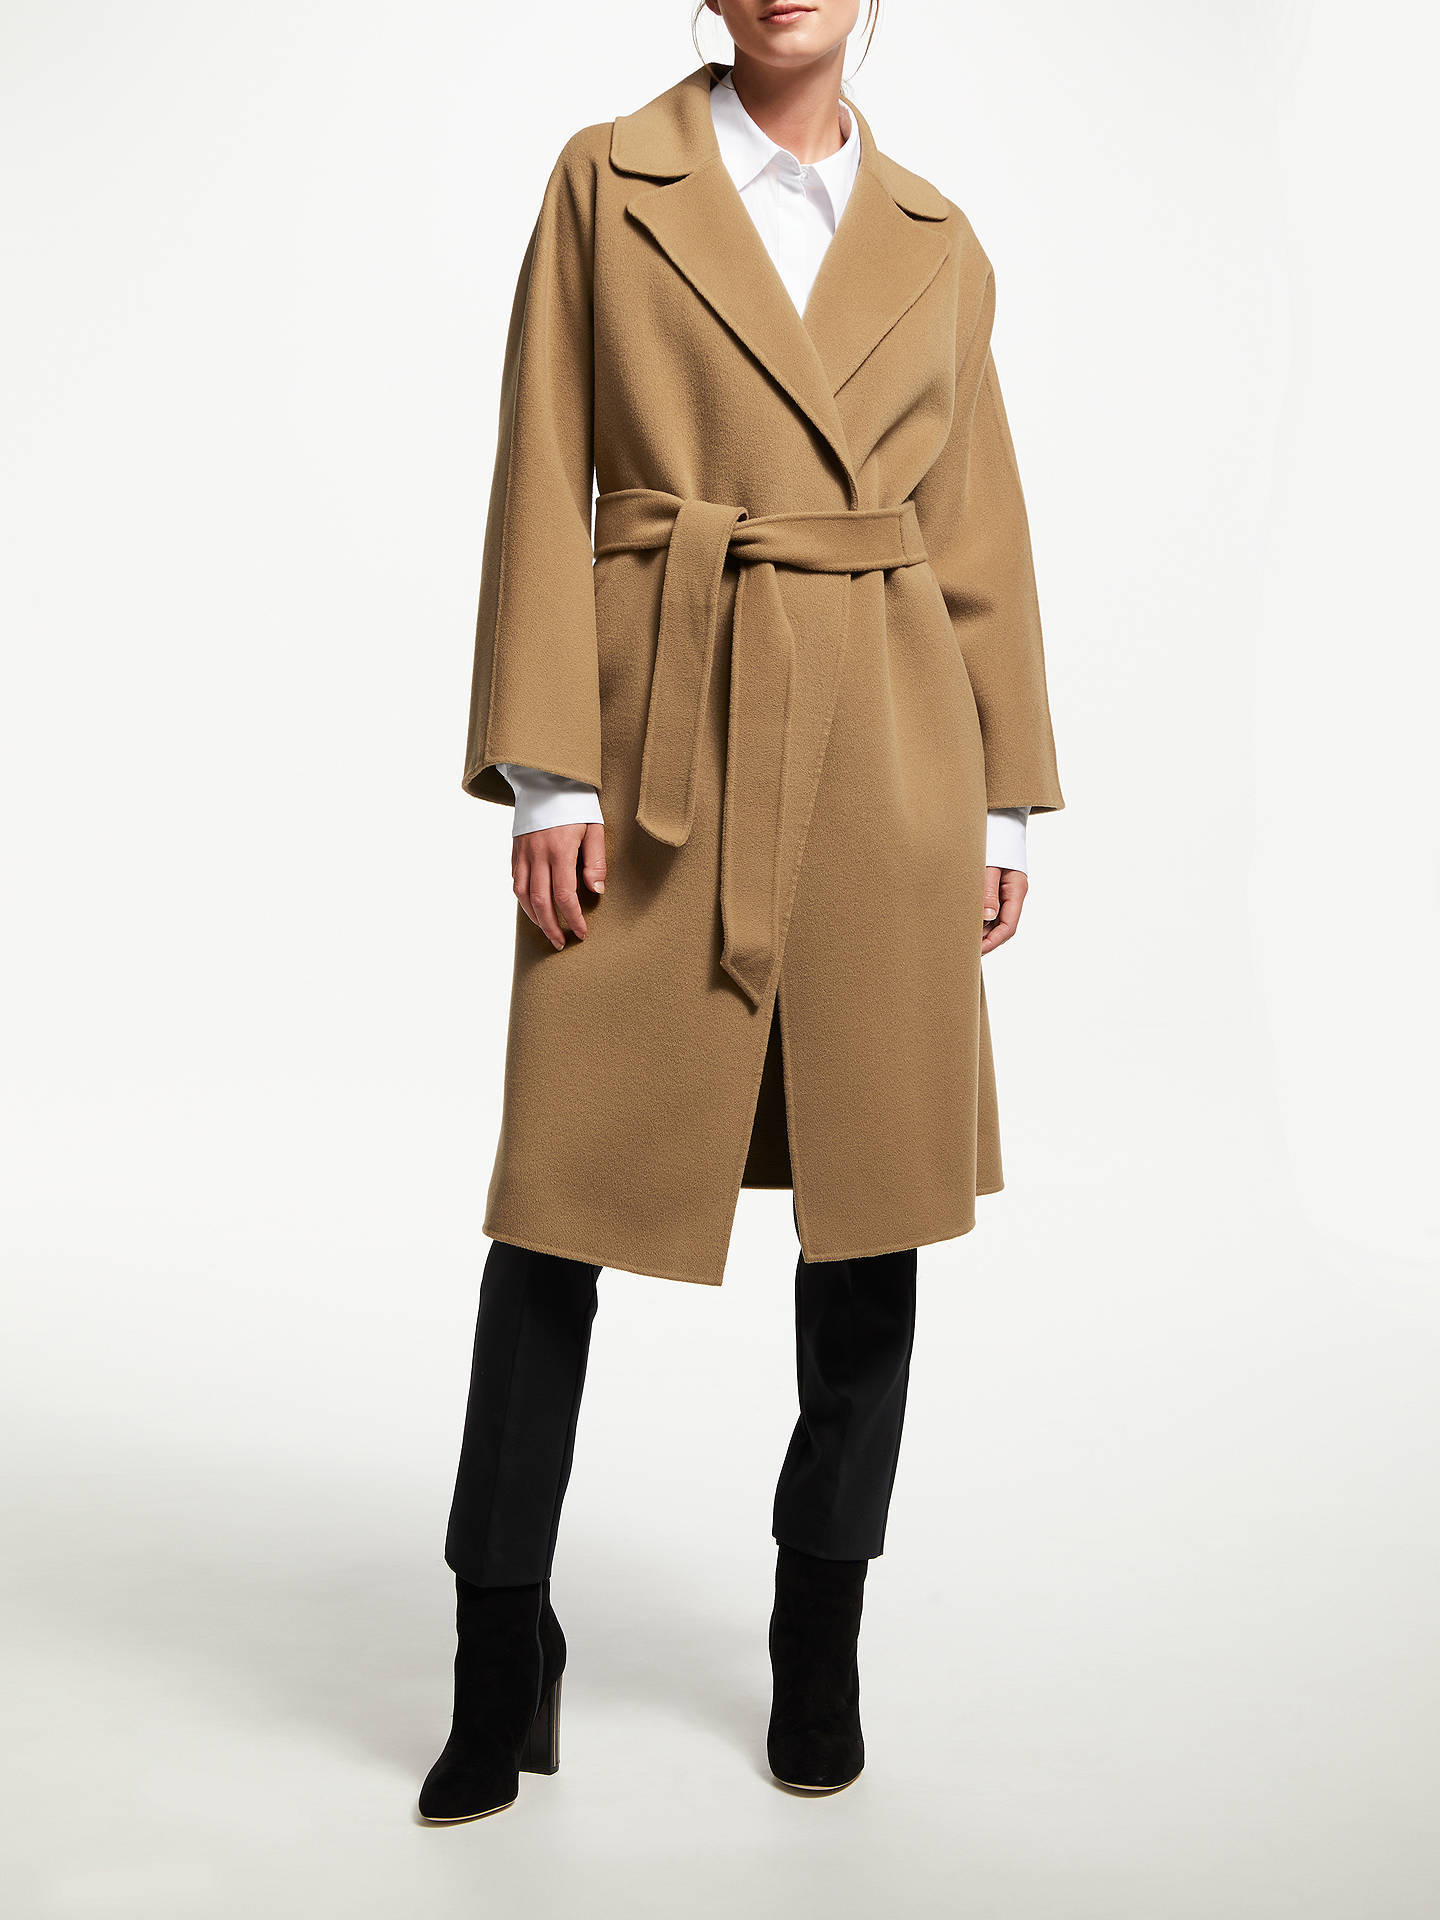 8dffe405622c8 Buy Weekend MaxMara Burgos Wool Belted Coat, Camel, 8 Online at  johnlewis.com ...